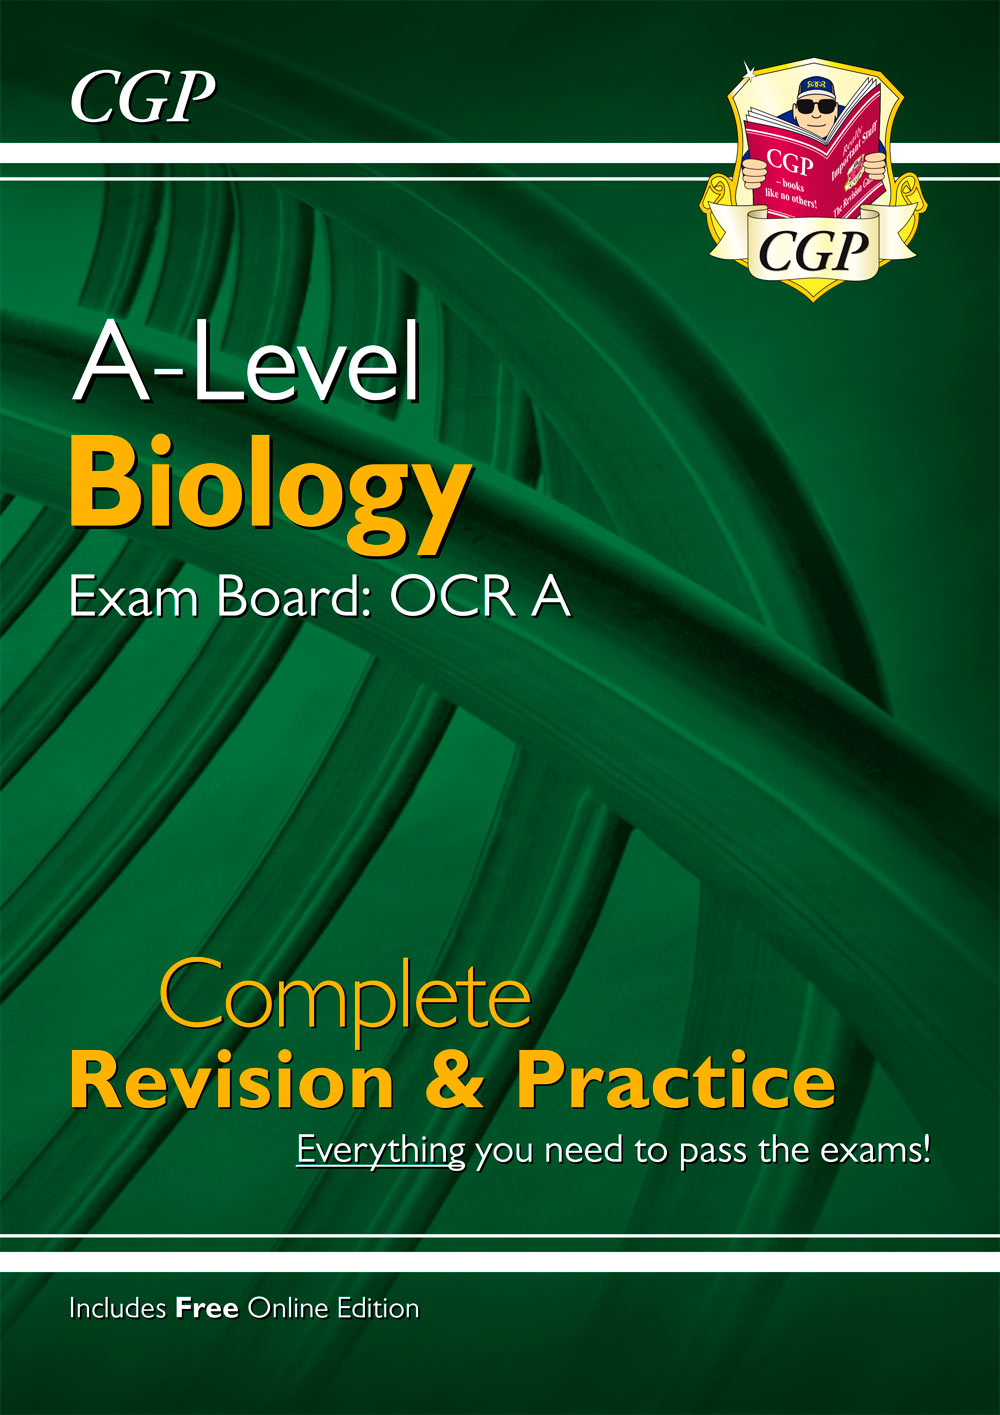 BRAR73 - New A-Level Biology: OCR A Year 1 & 2 Complete Revision & Practice with Online Edition